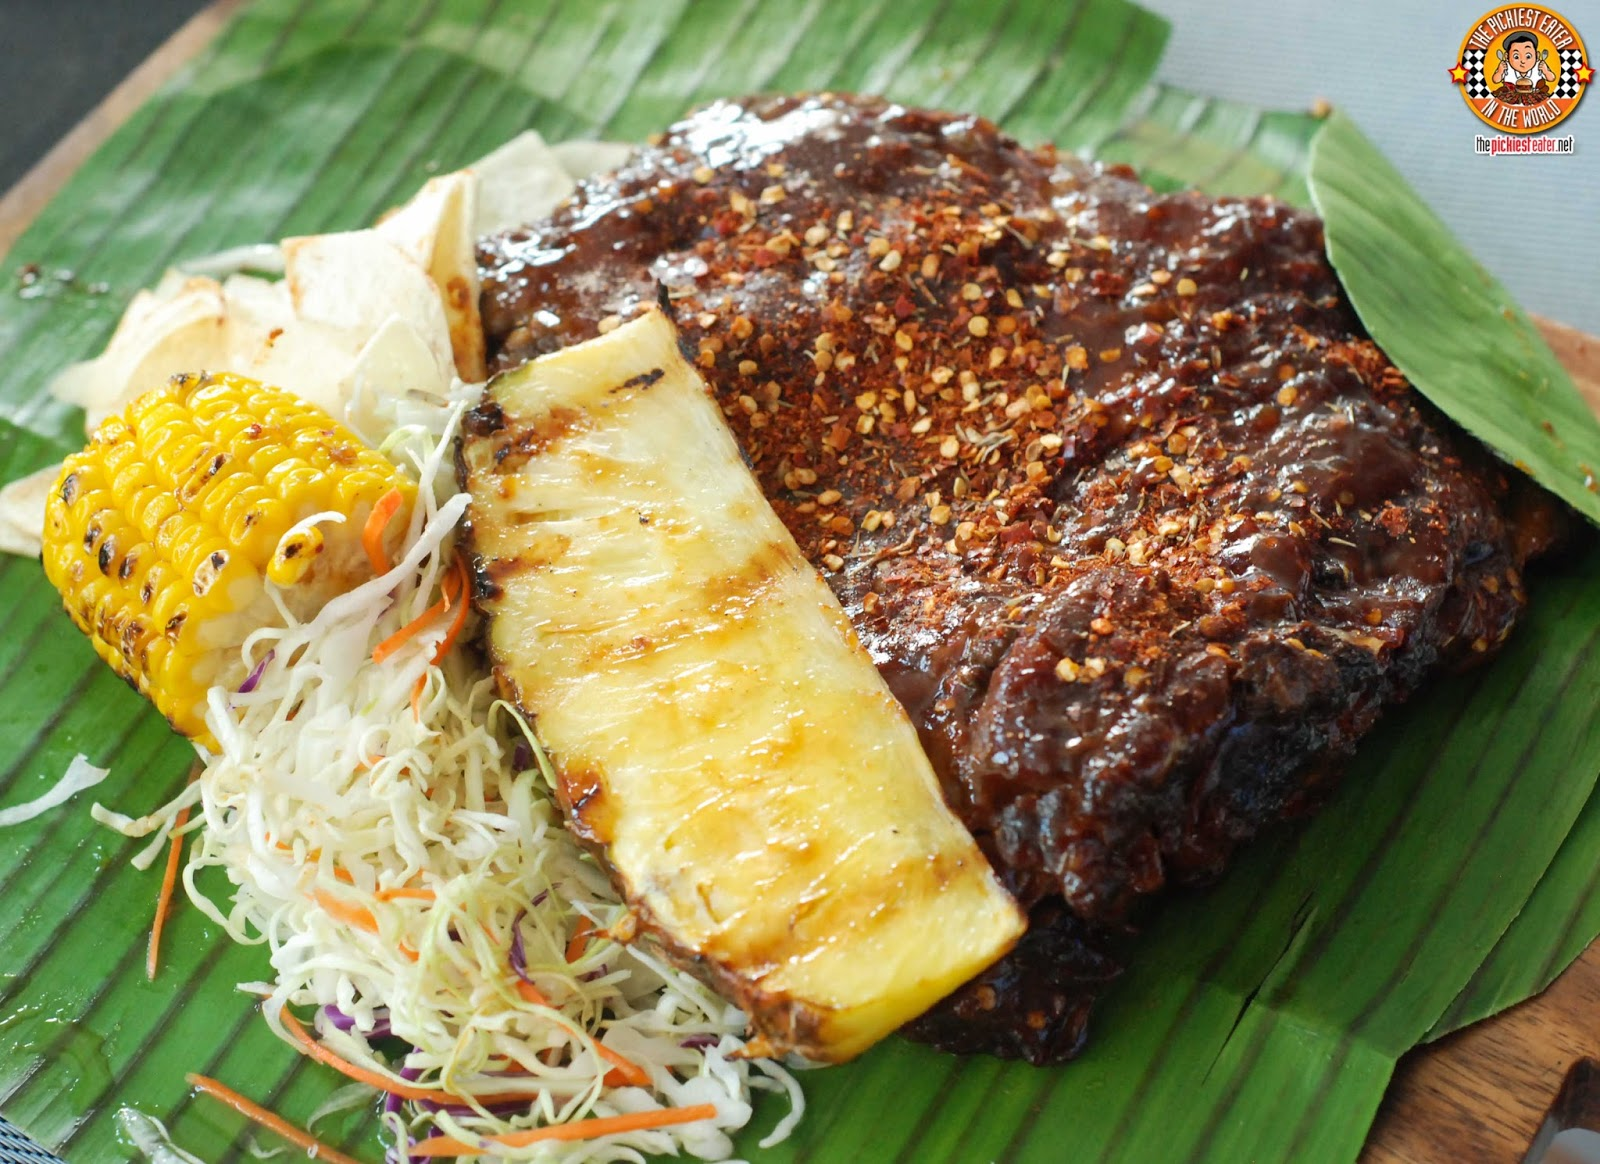 THE PICKIEST EATER IN THE WORLD: ALOHA, FROM THE ORIGINAL ...